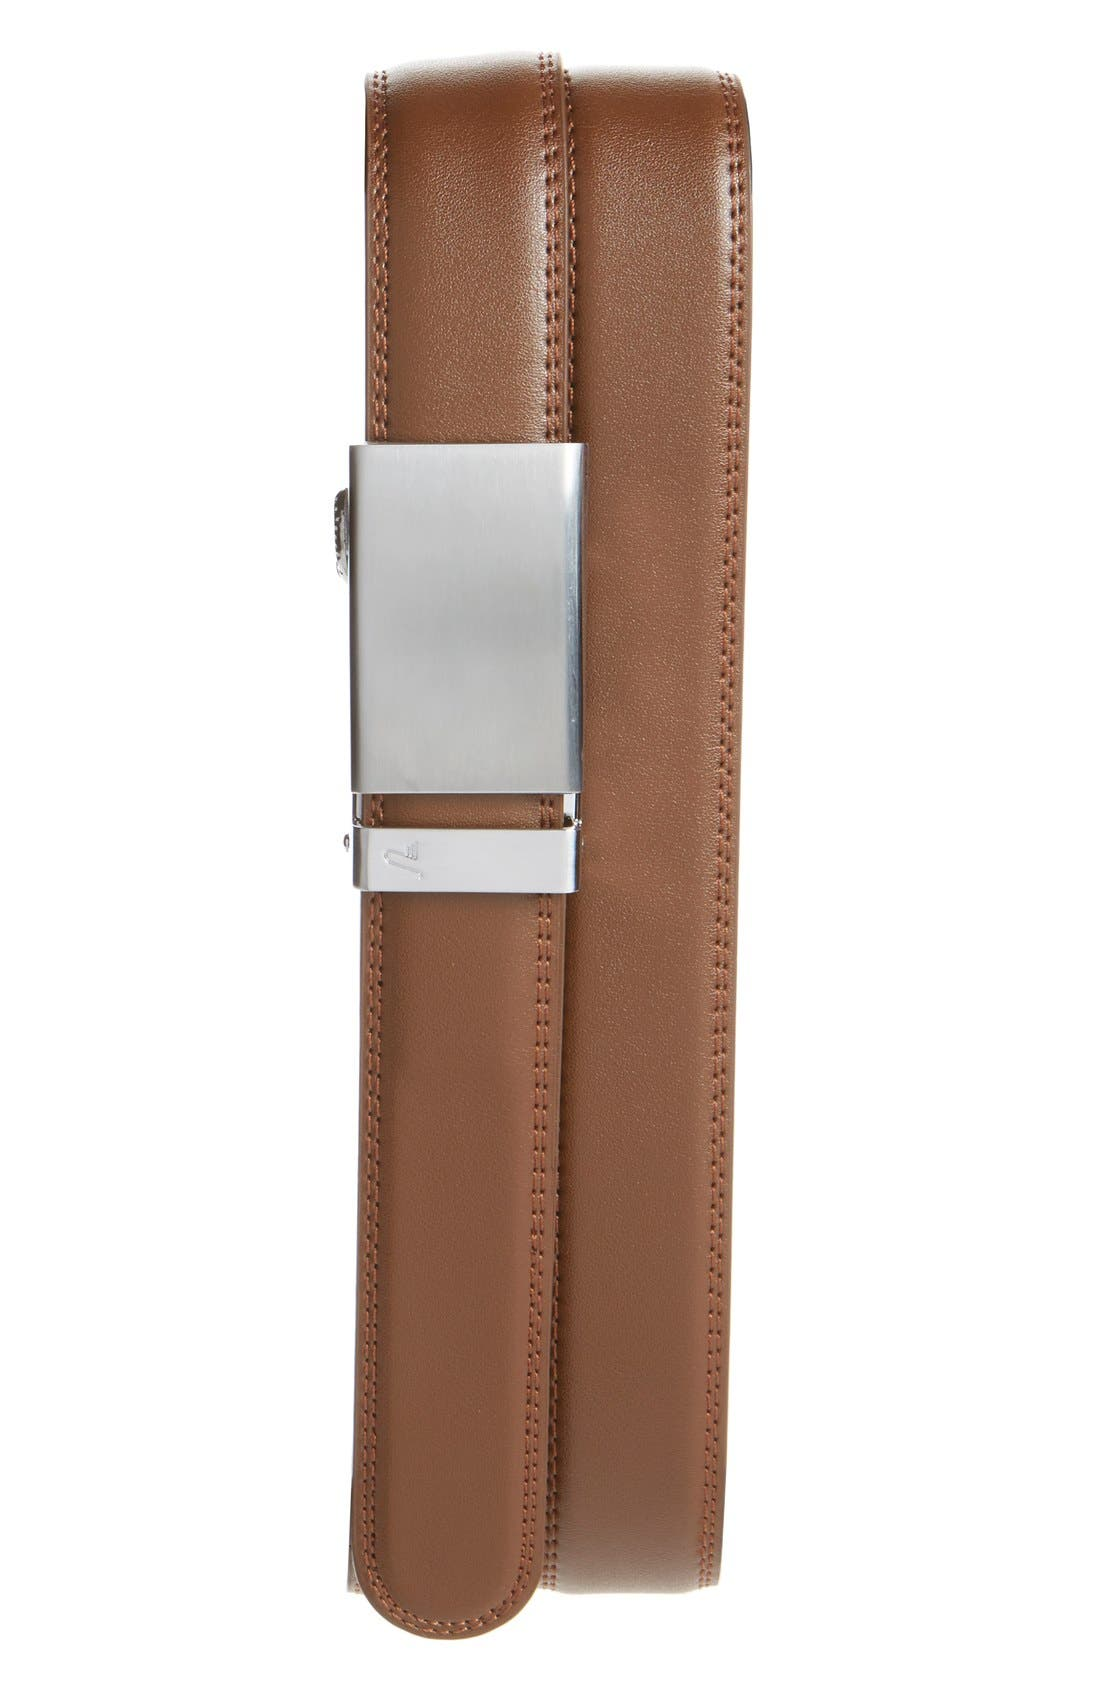 Mission Belt 'Cocoa' Leather Belt